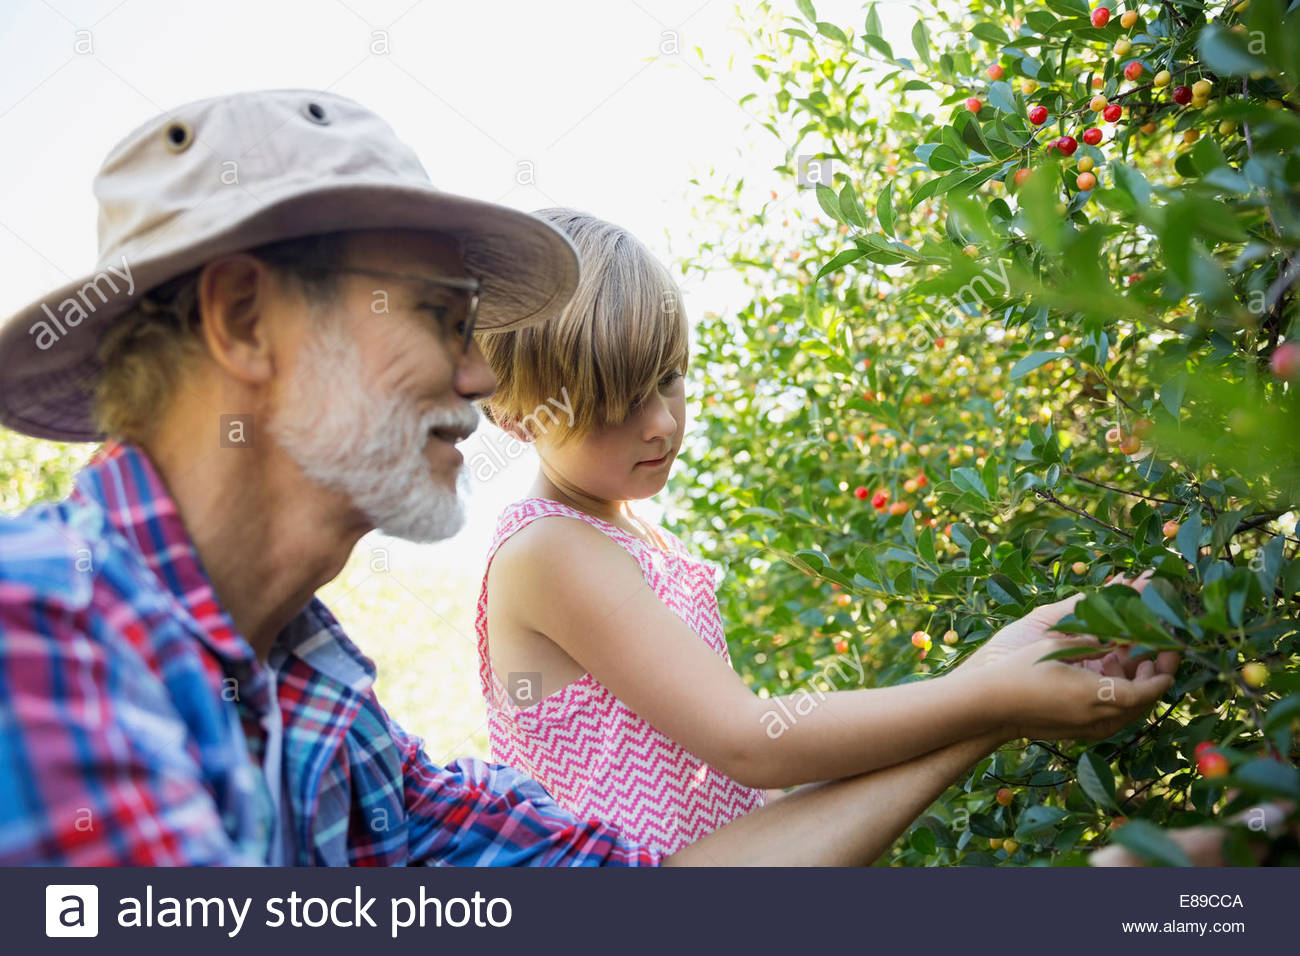 Grandfather and granddaughter picking currants in garden - Stock Image